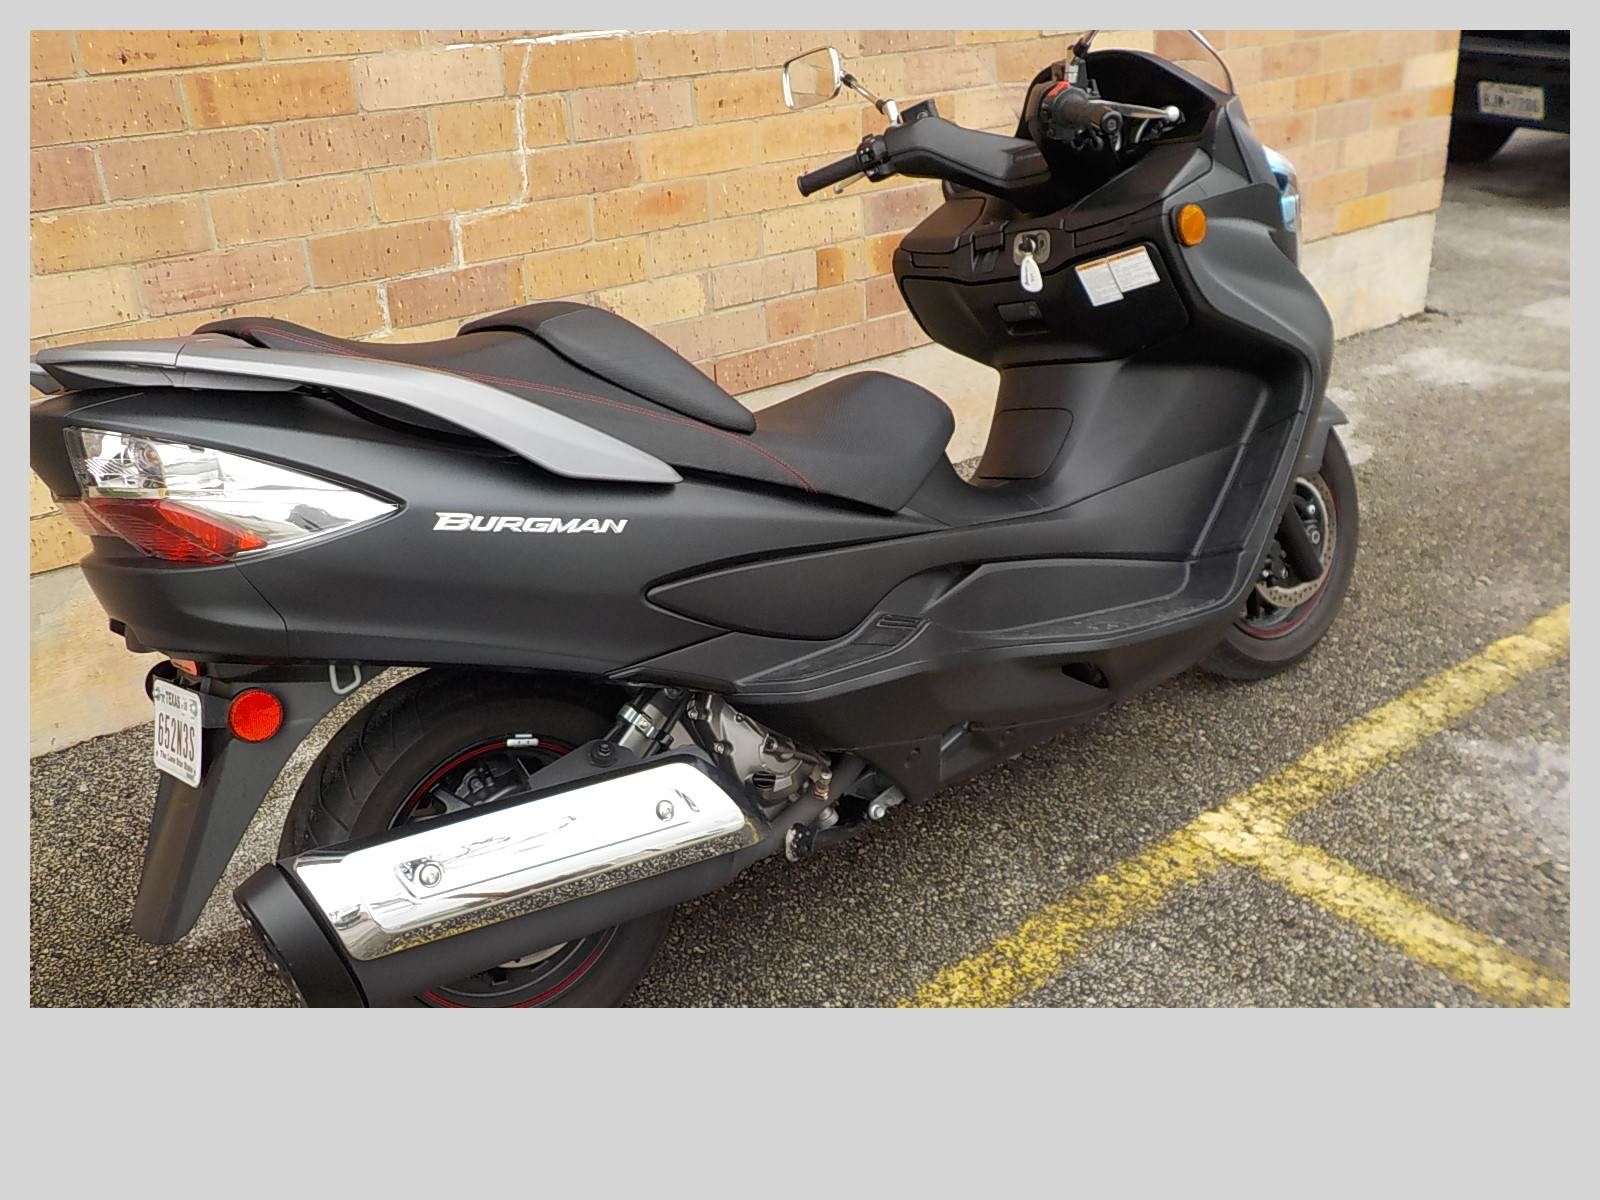 2013 Suzuki Burgman™ 400 ABS in San Antonio, Texas